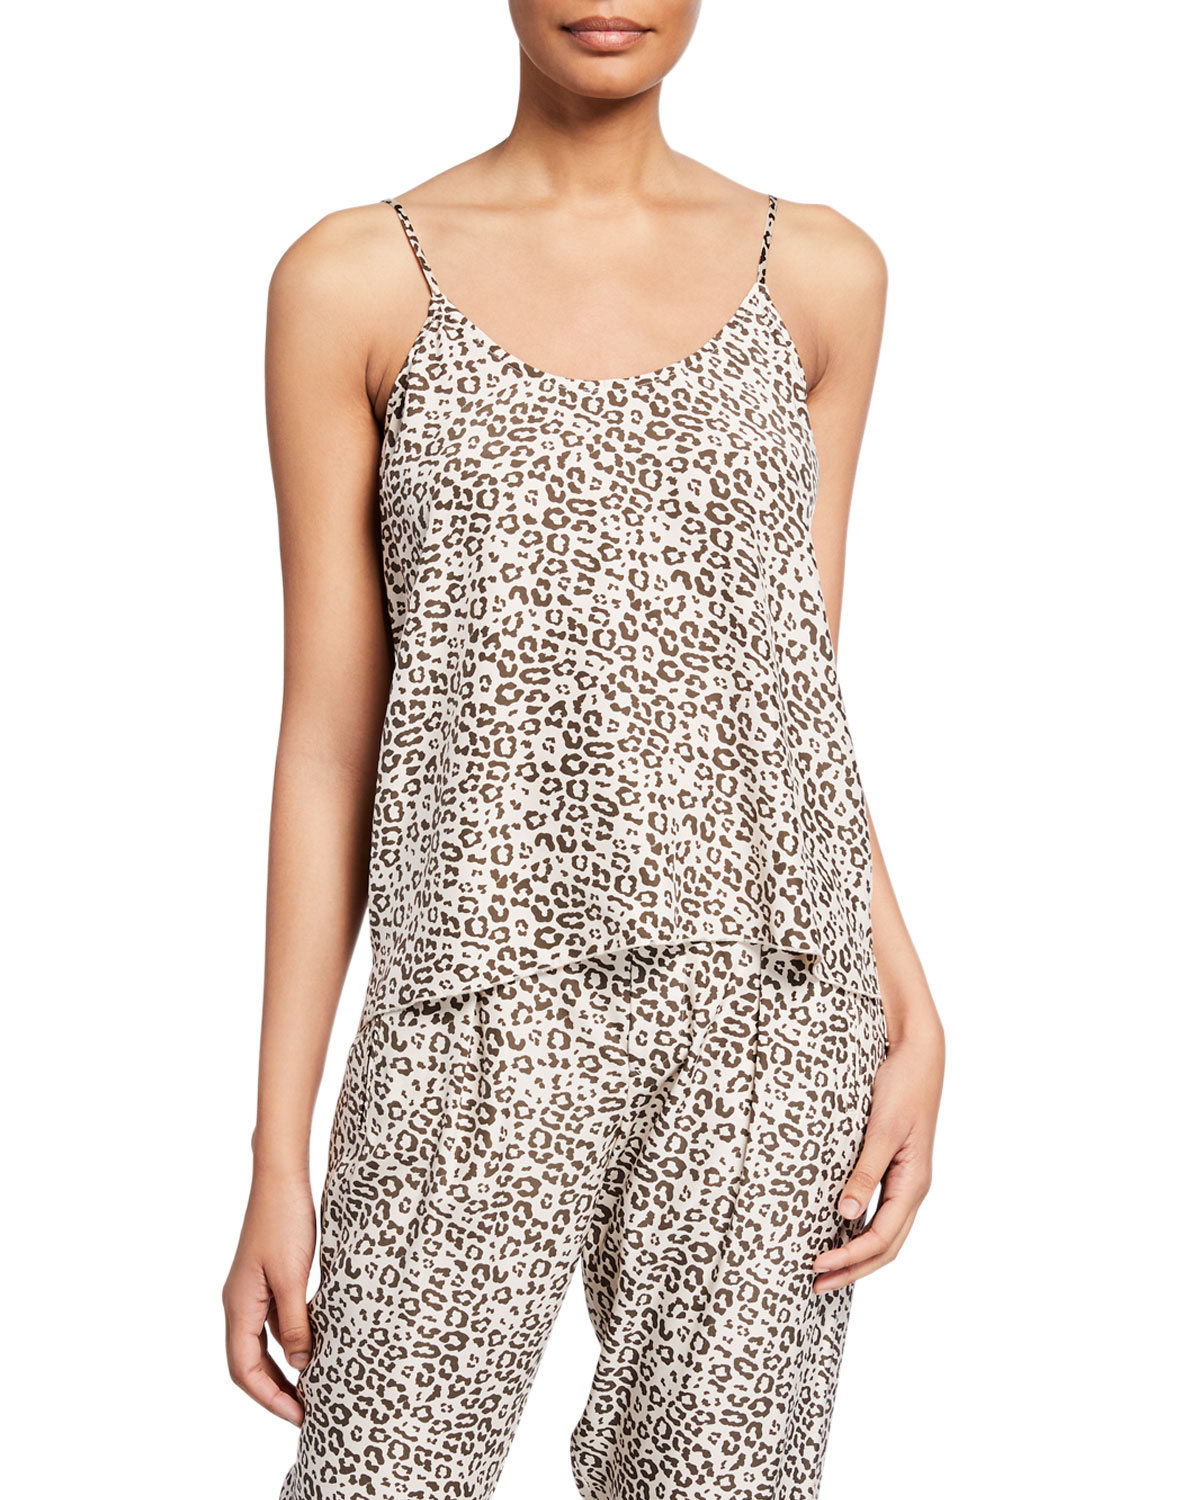 Atm Anthony Thomas Melillo Tops LUNAR LEOPARD-PRINT SILK CAMISOLE